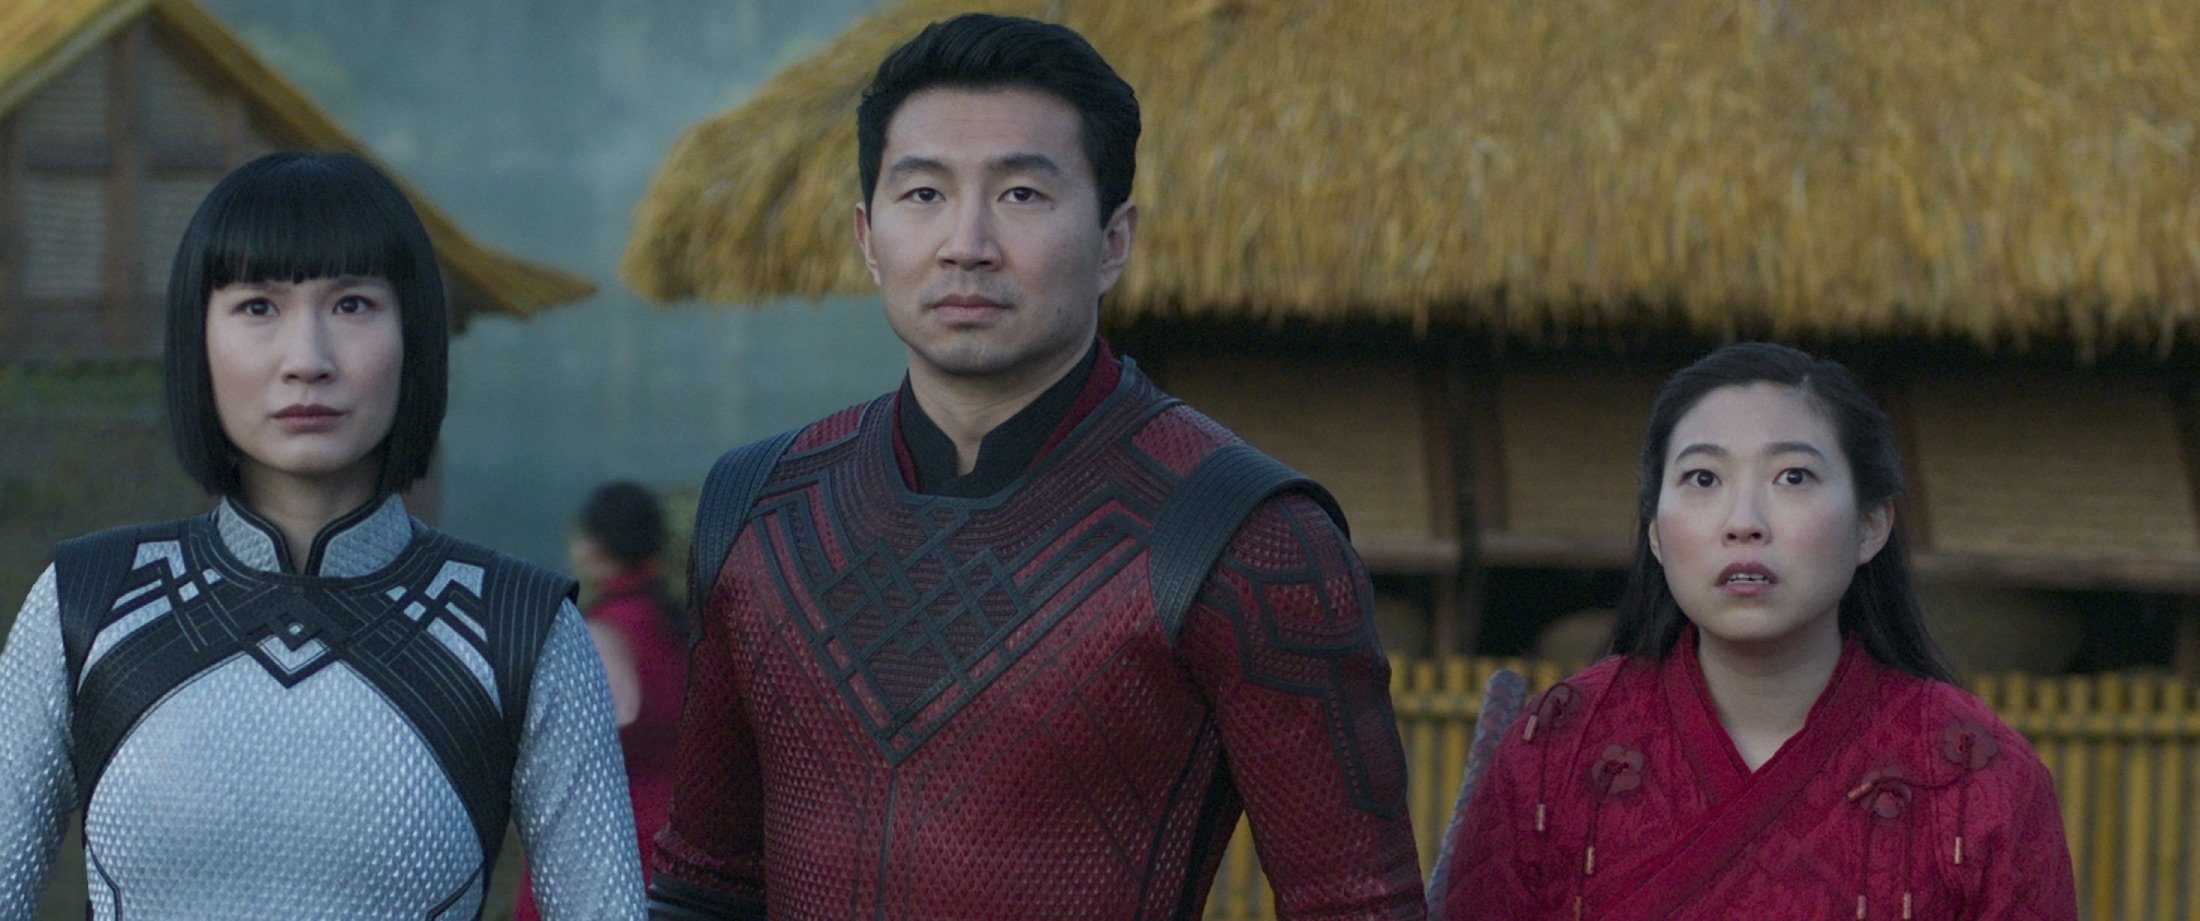 """Meng'er Zhang (L),Simu Liu (C) andAwkwafina, in a scene from the film """"Shang-Chi and the Legend of the Ten Rings."""" (Marvel Studios via AP)"""